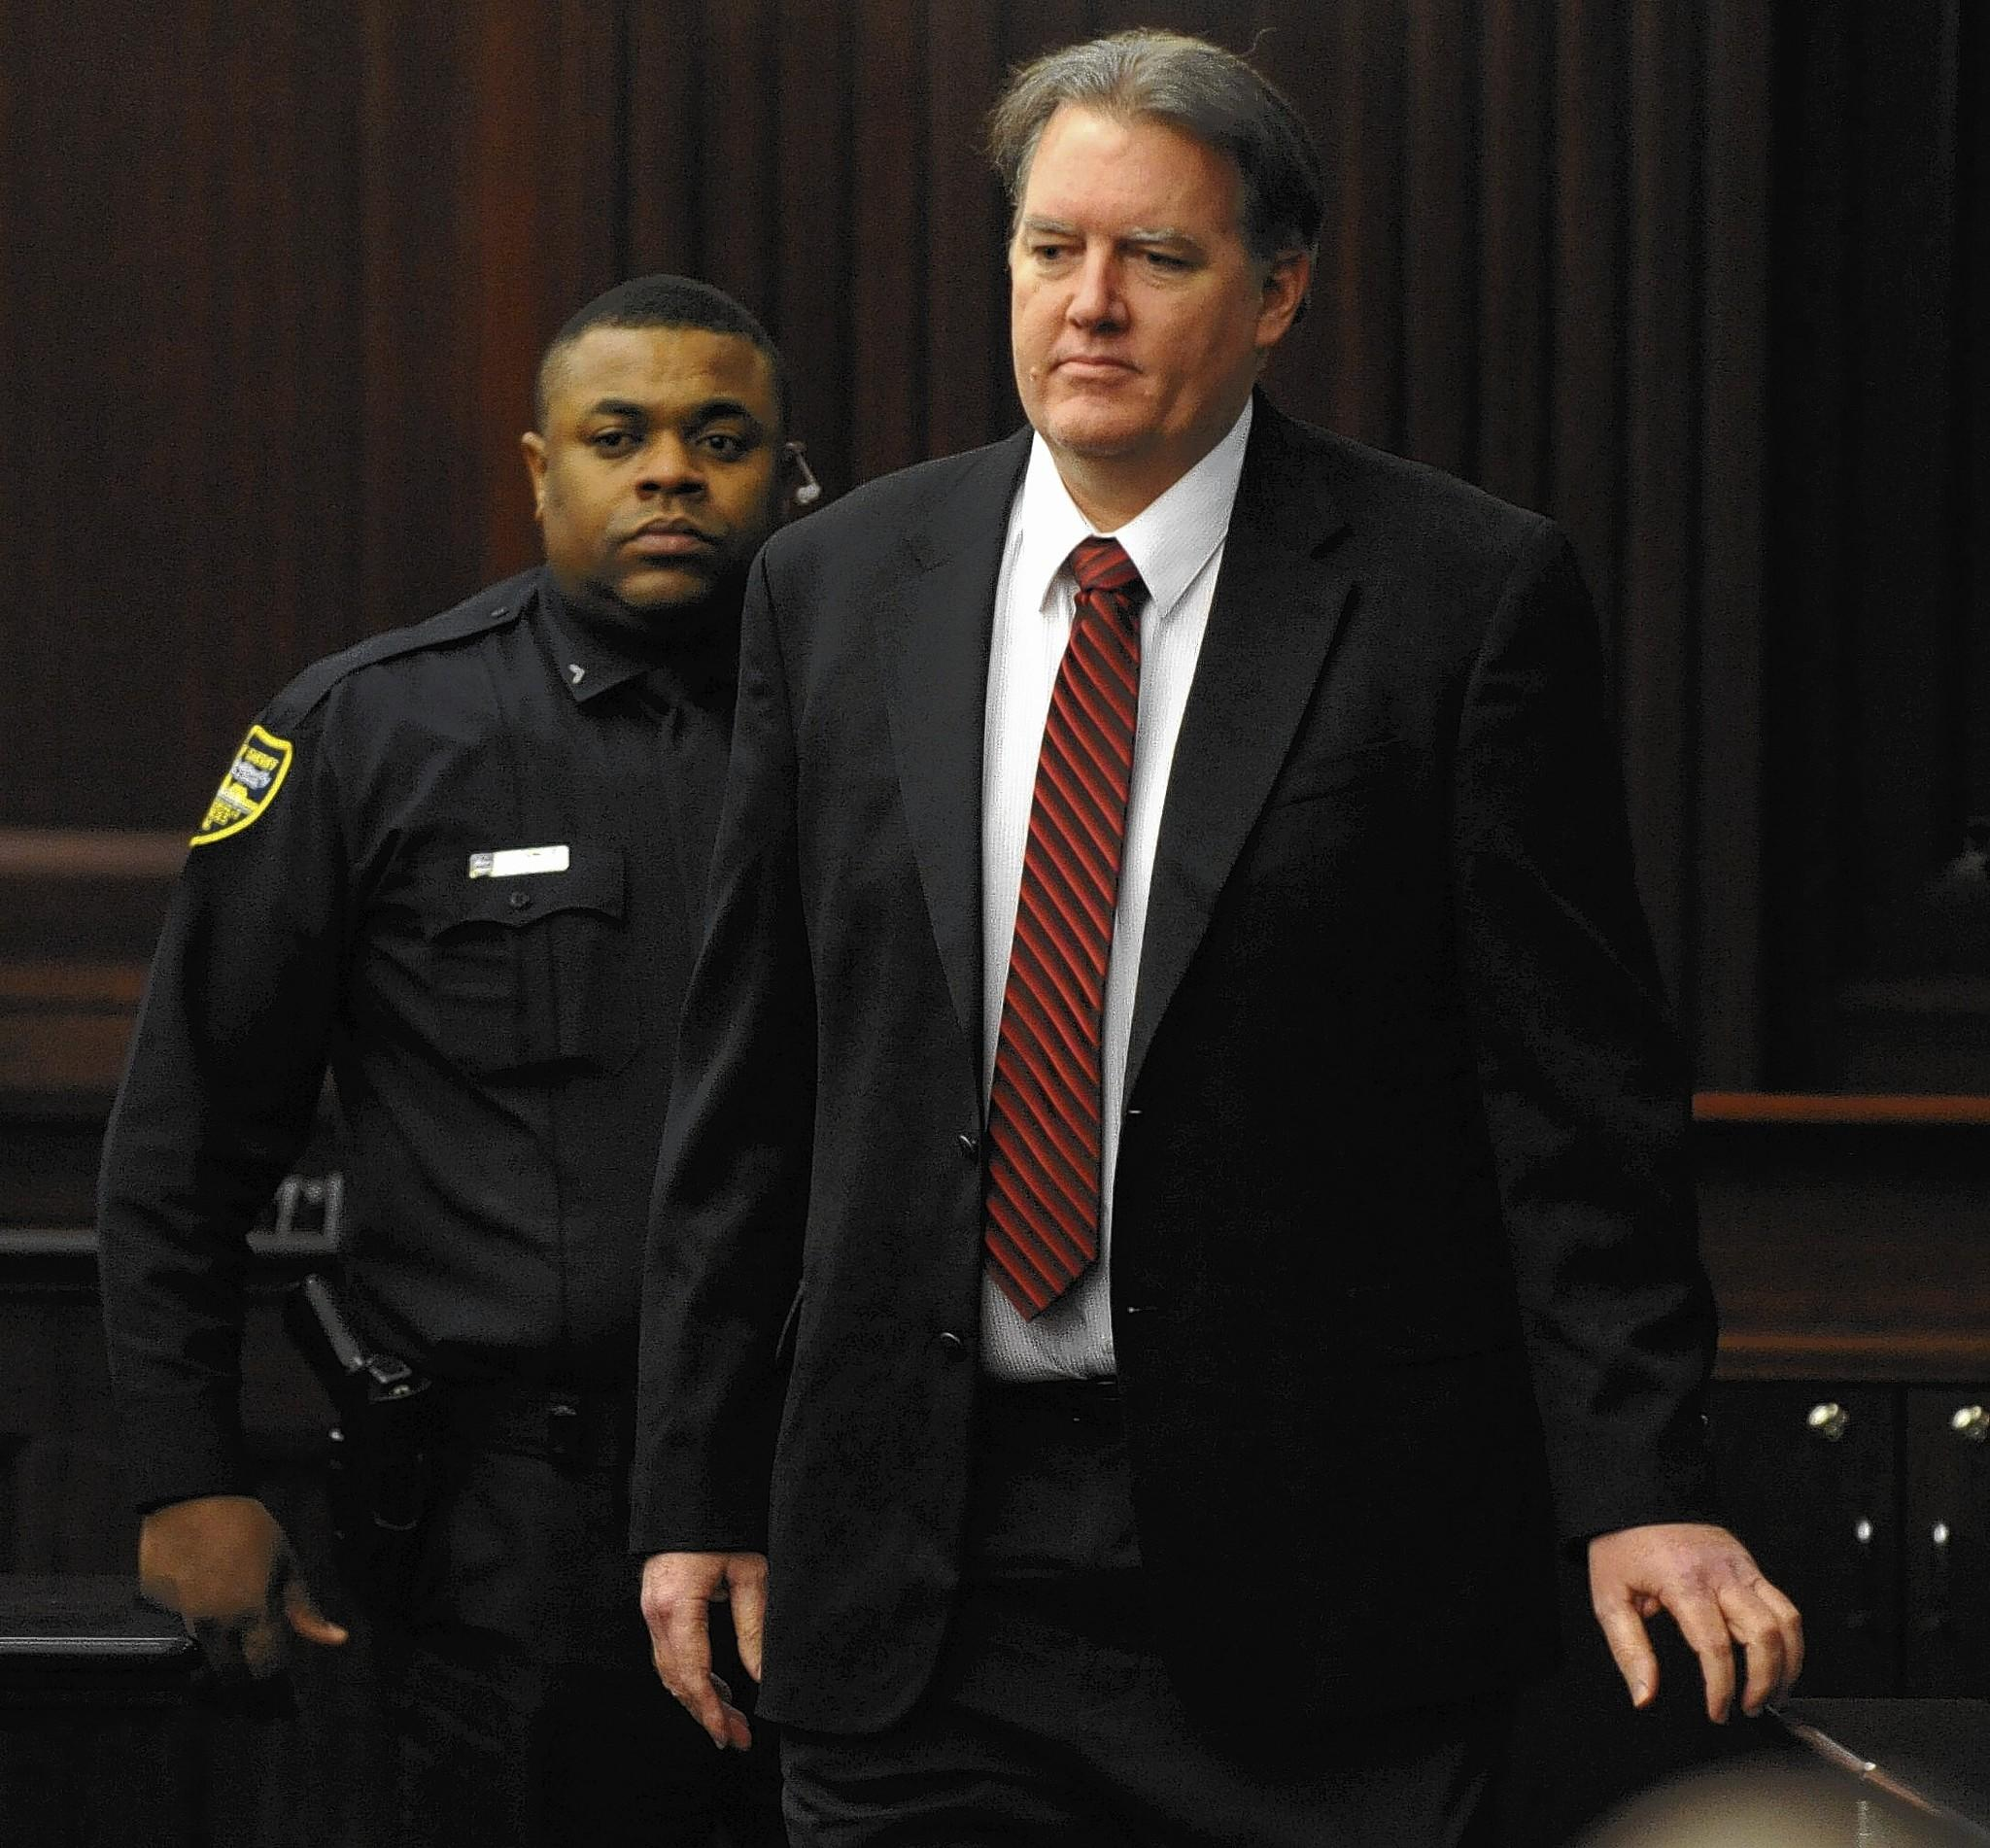 Michael Dunn had faced a first-degree murder charge in the killing of unarmed teenager Jordan Davis in Florida after a dispute over loud music. A jury was unable to agree on that charge but convicted him on lesser charges that require at least 60 years in prison.